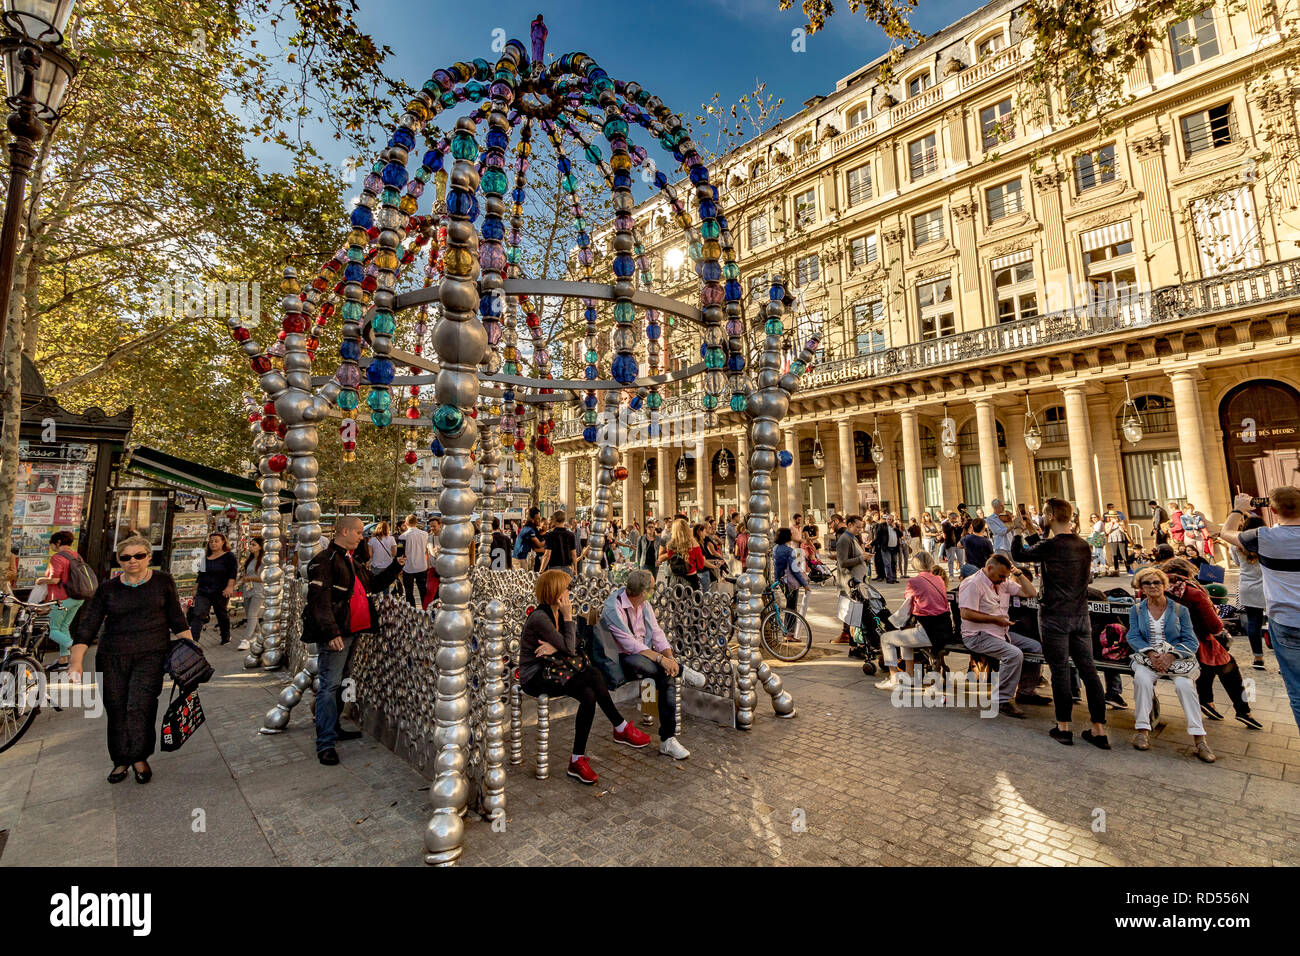 The colourful Cuploa or archway made made from Glass beads at The Entrance to Palais Royal – Musée du Louvre Metro station at  Place Colette ,Paris - Stock Image